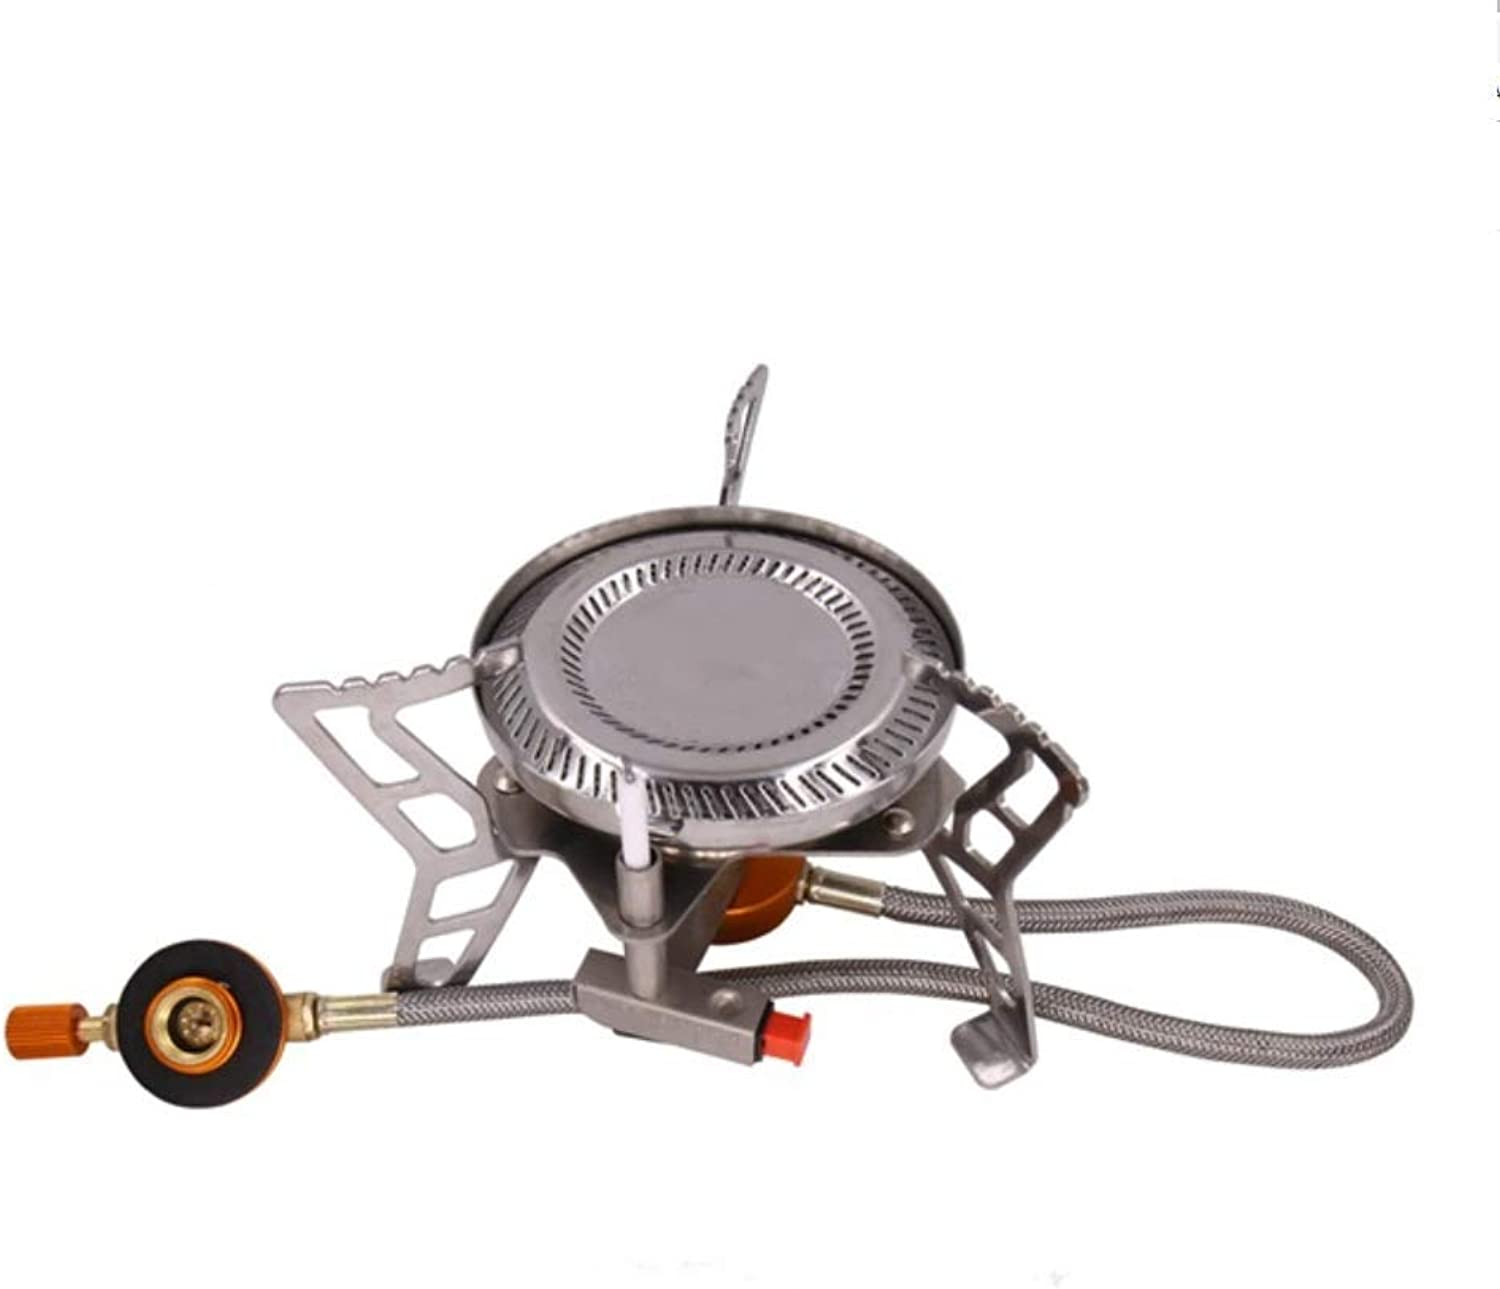 1-1 Campingofen, Portable Compact Faltvorleumfen Brennstove High Power Electronic Fireproof Windproof Stove Outdoor Travel